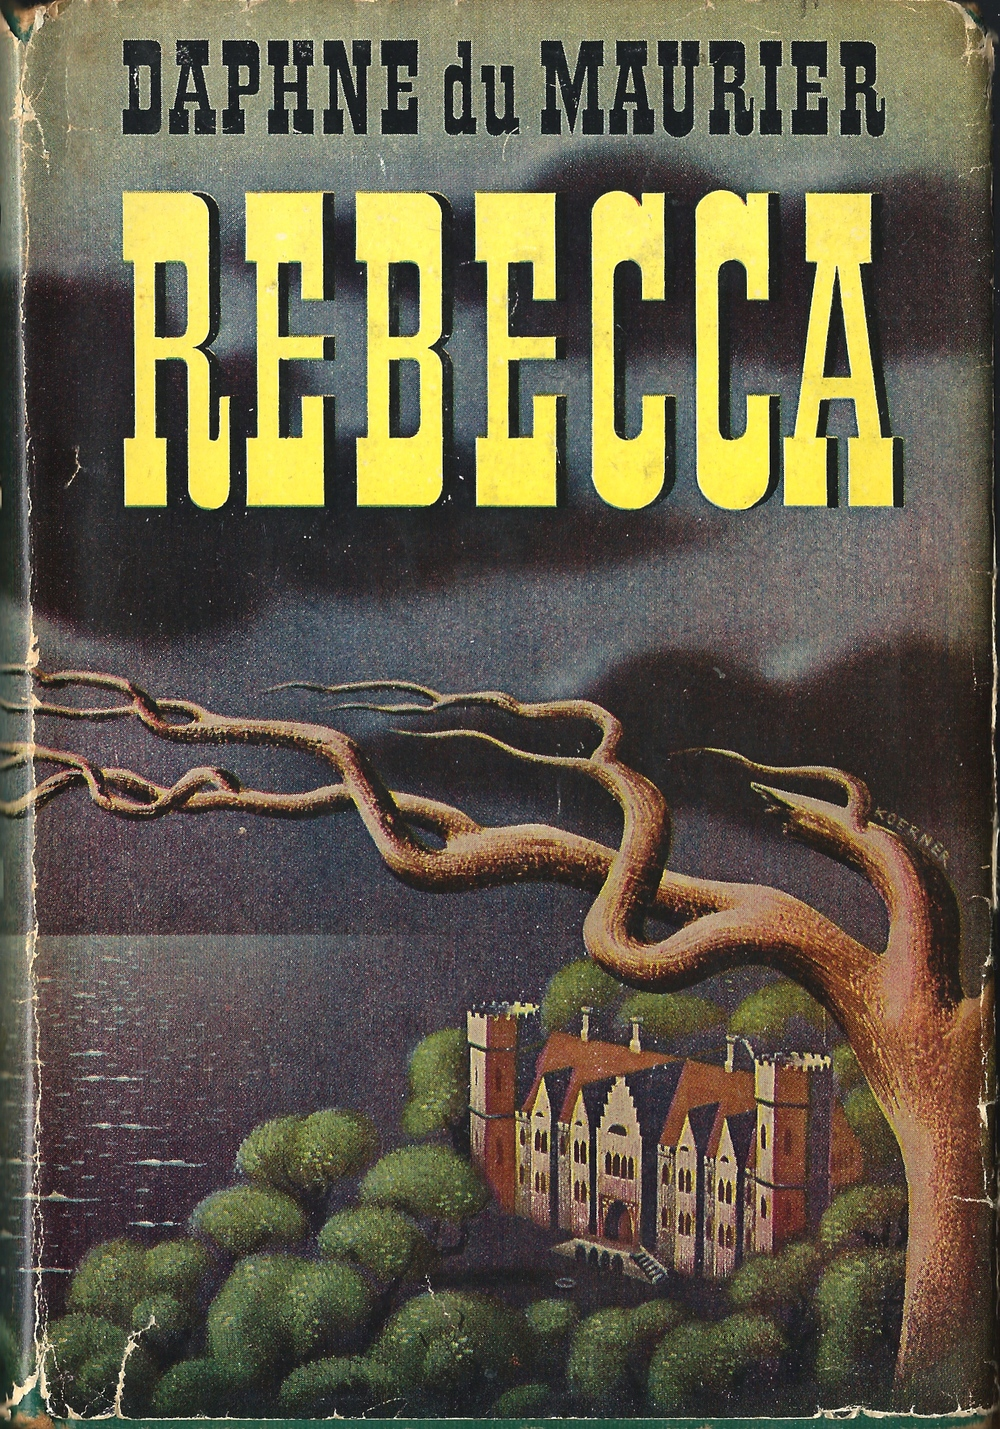 Rebecca by Daphne du Maurier | 1940s edition